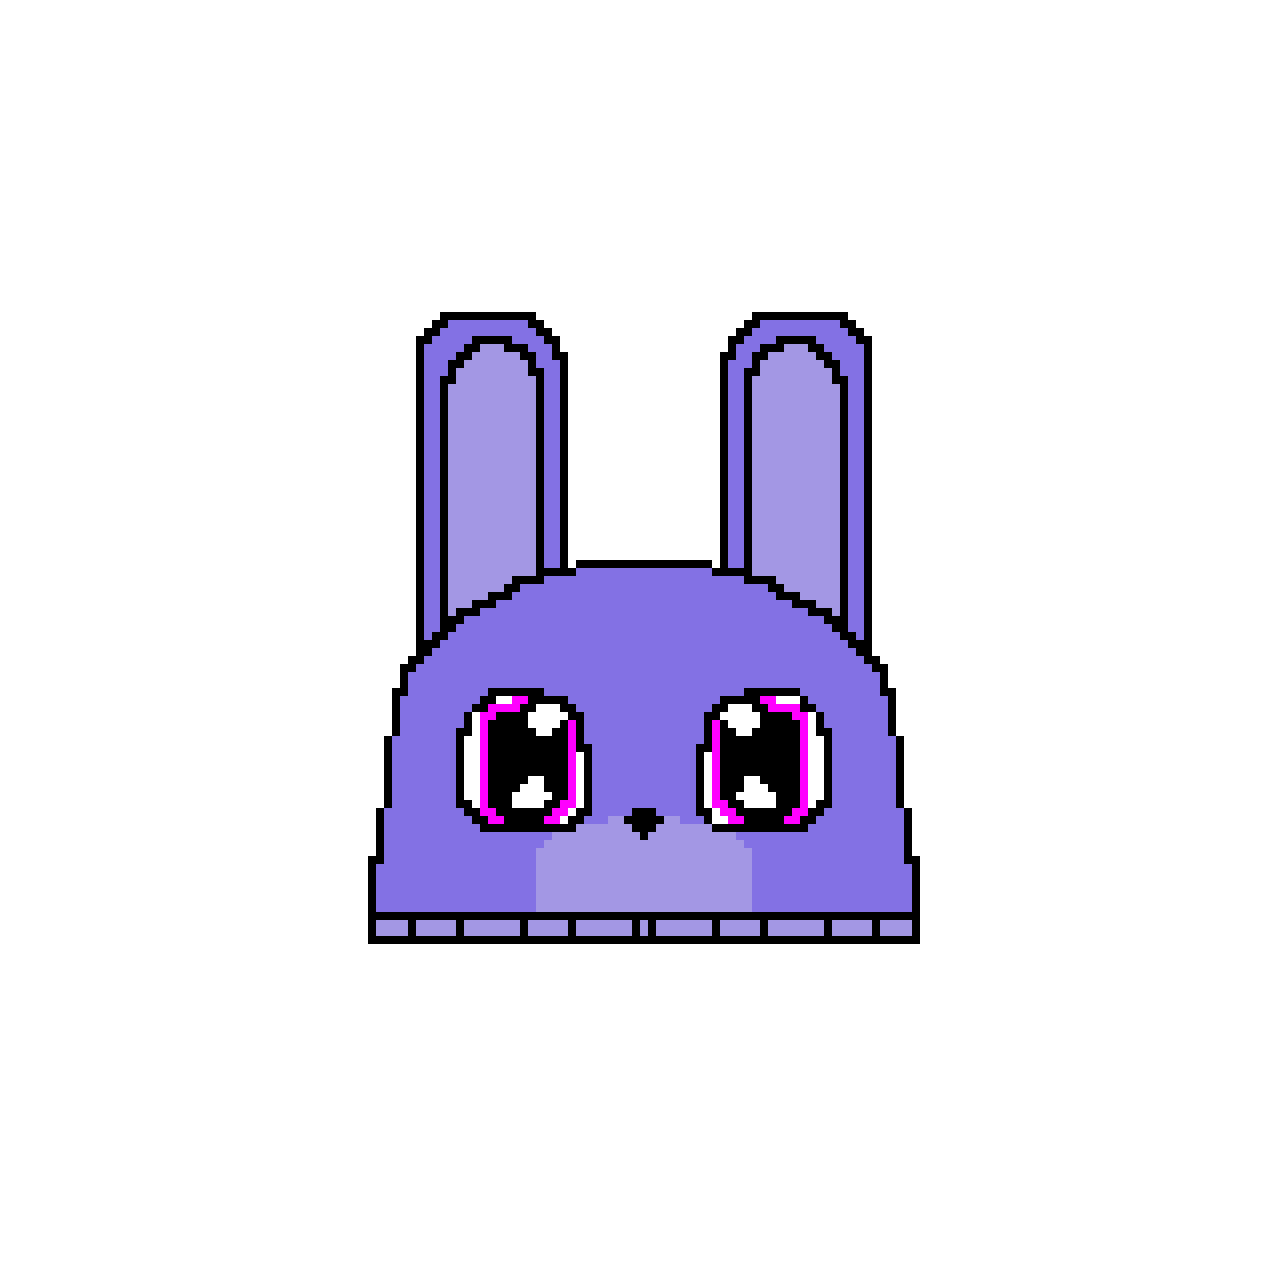 Bonnie The Bunny Slipper (If This Gets Ten Likes I'll Draw Withered Bonnie The Bunny Slipper)